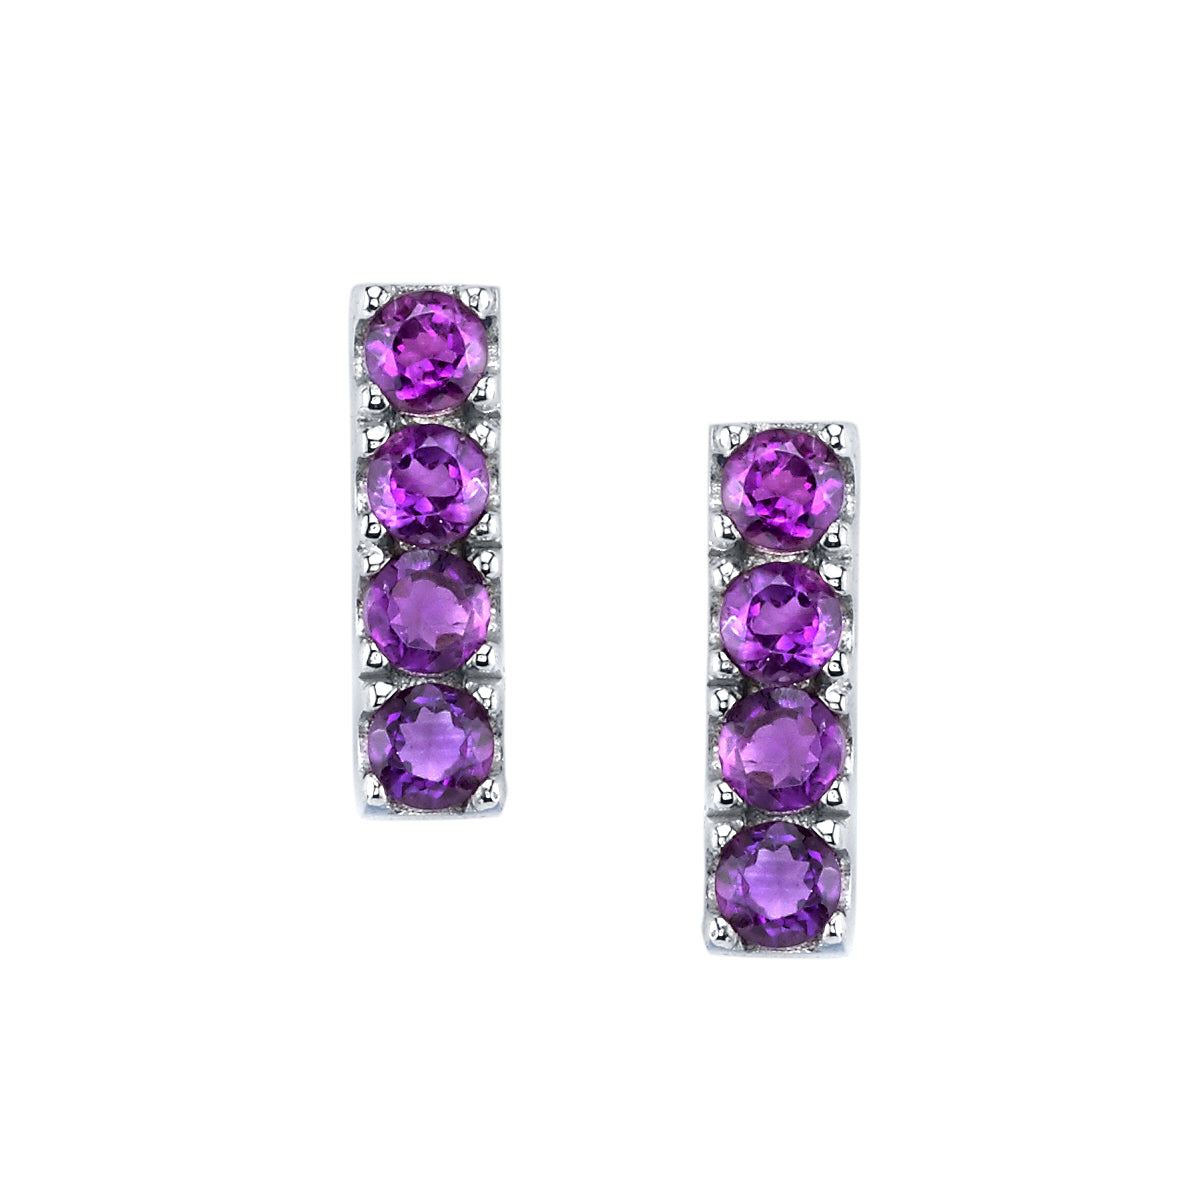 Four Stone Stud Earrings